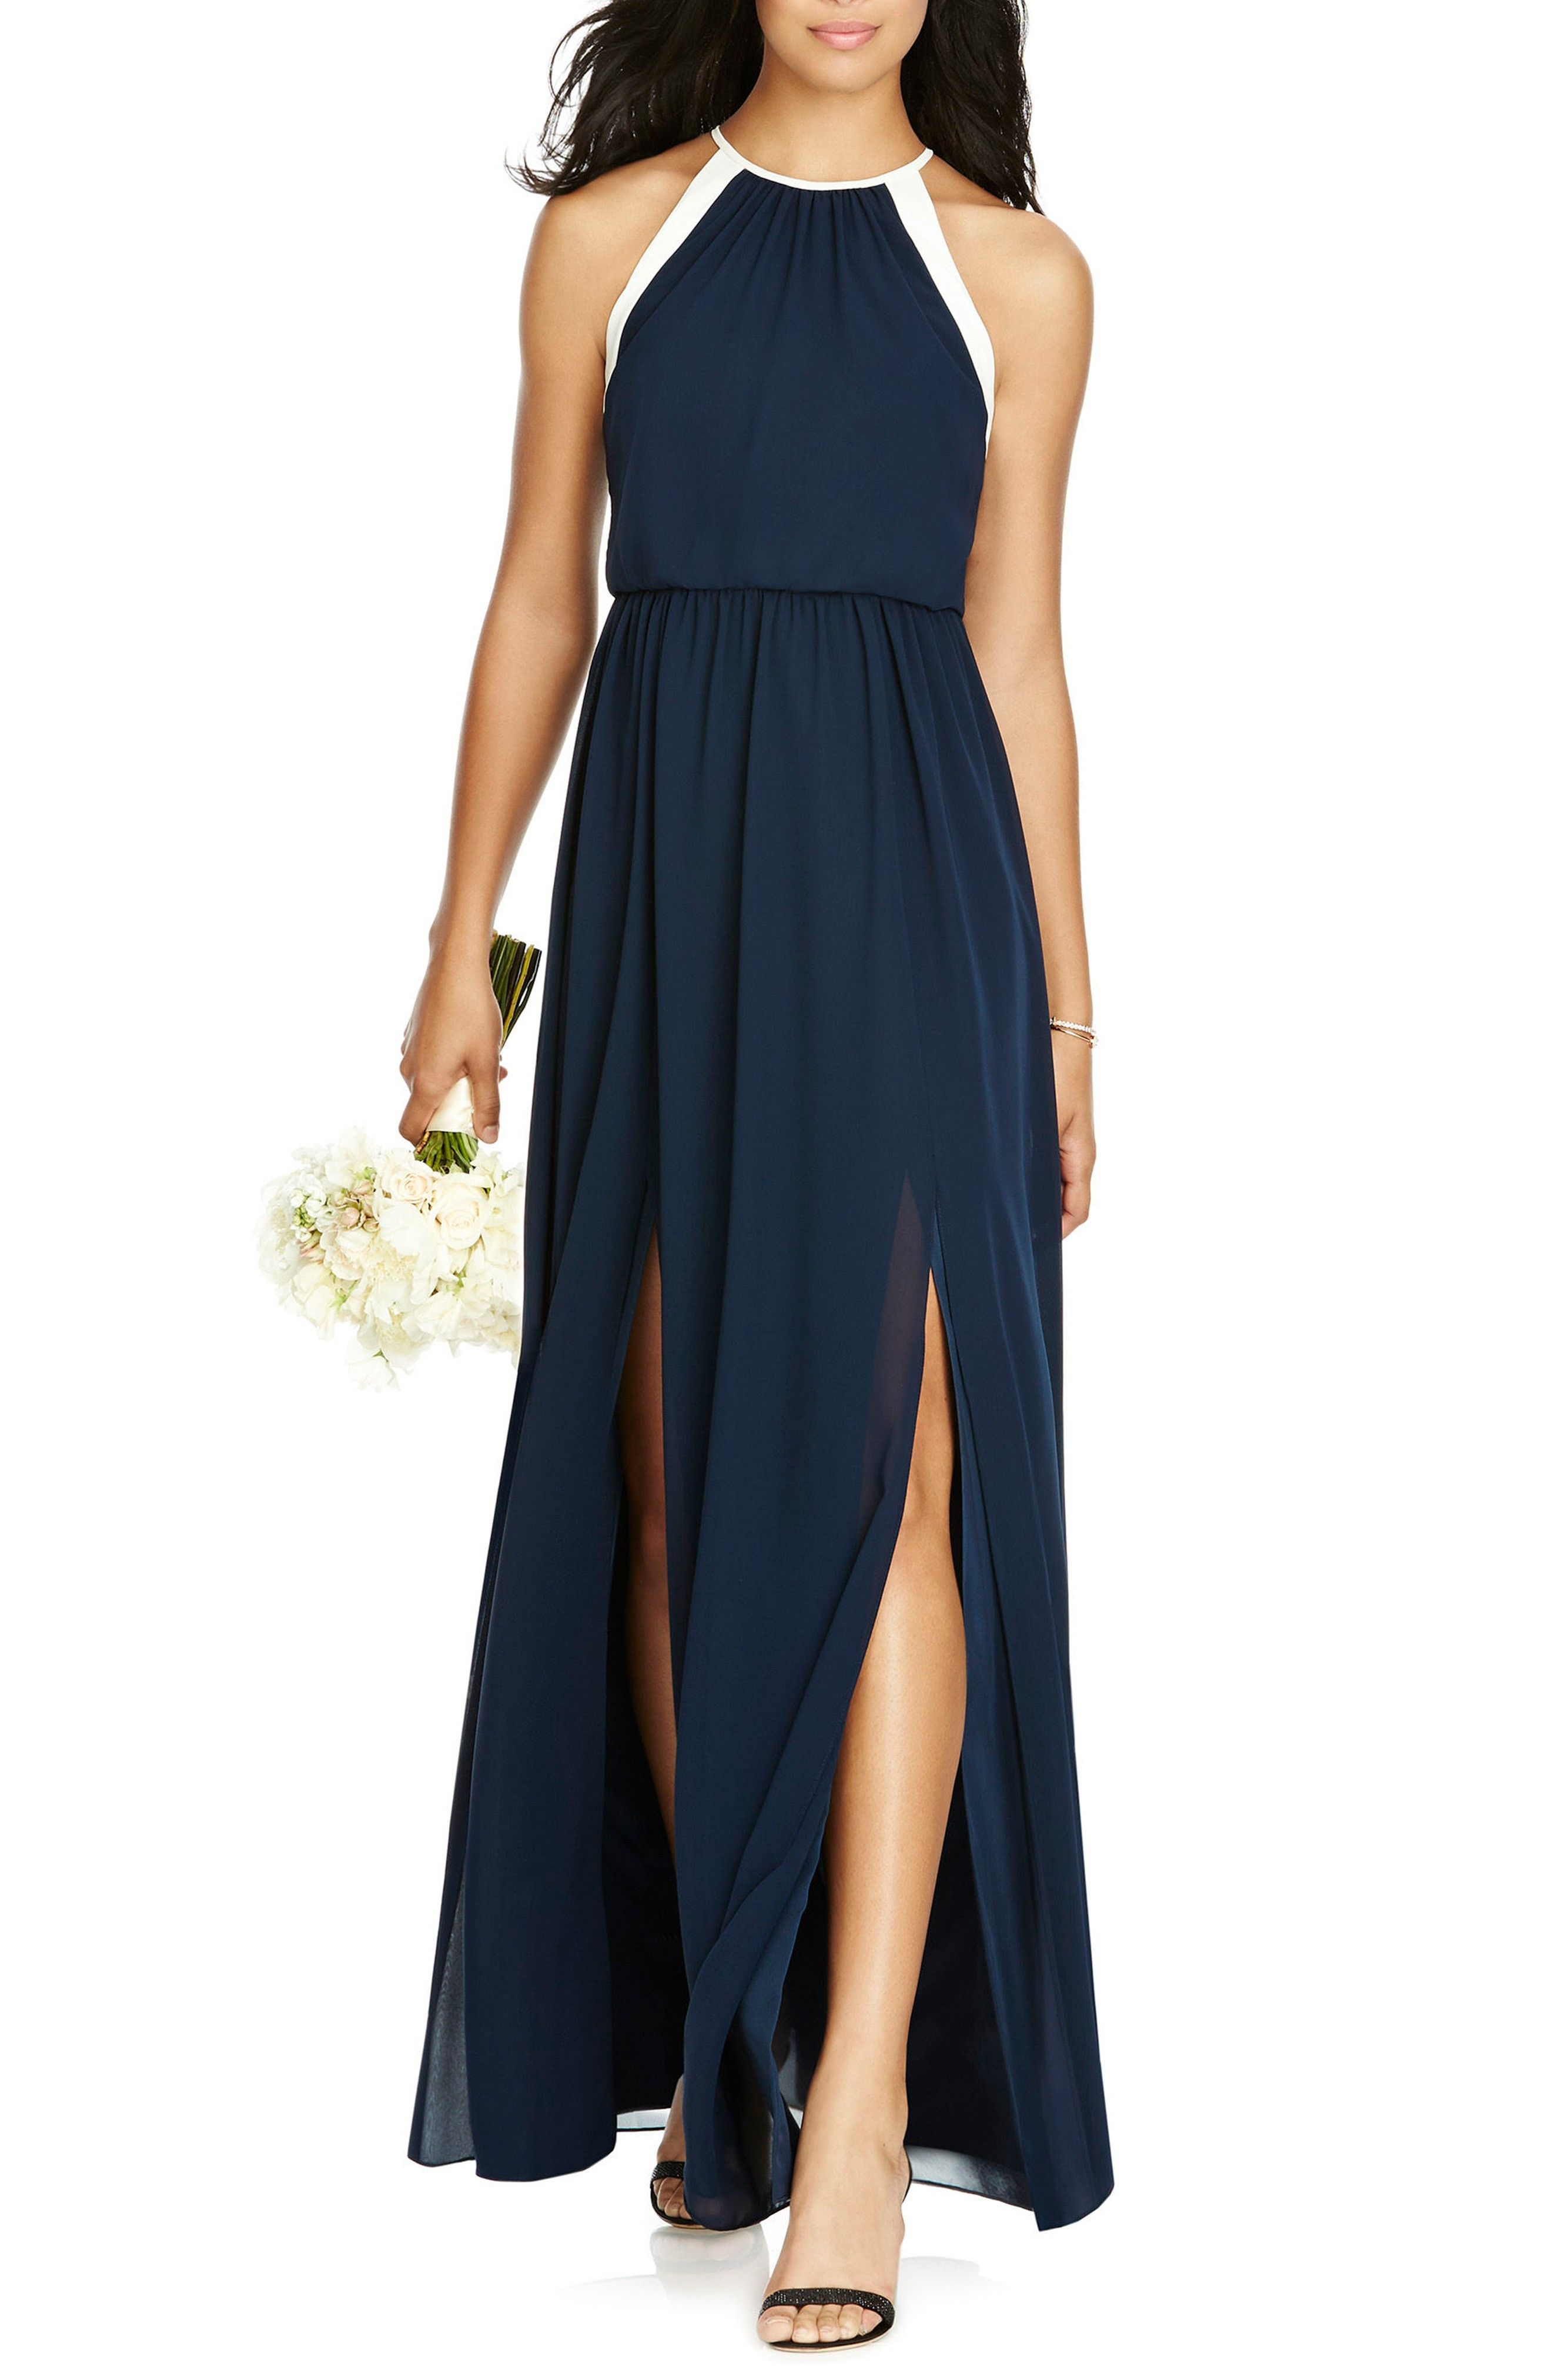 New social bridesmaids halter chiffon gown fashion online